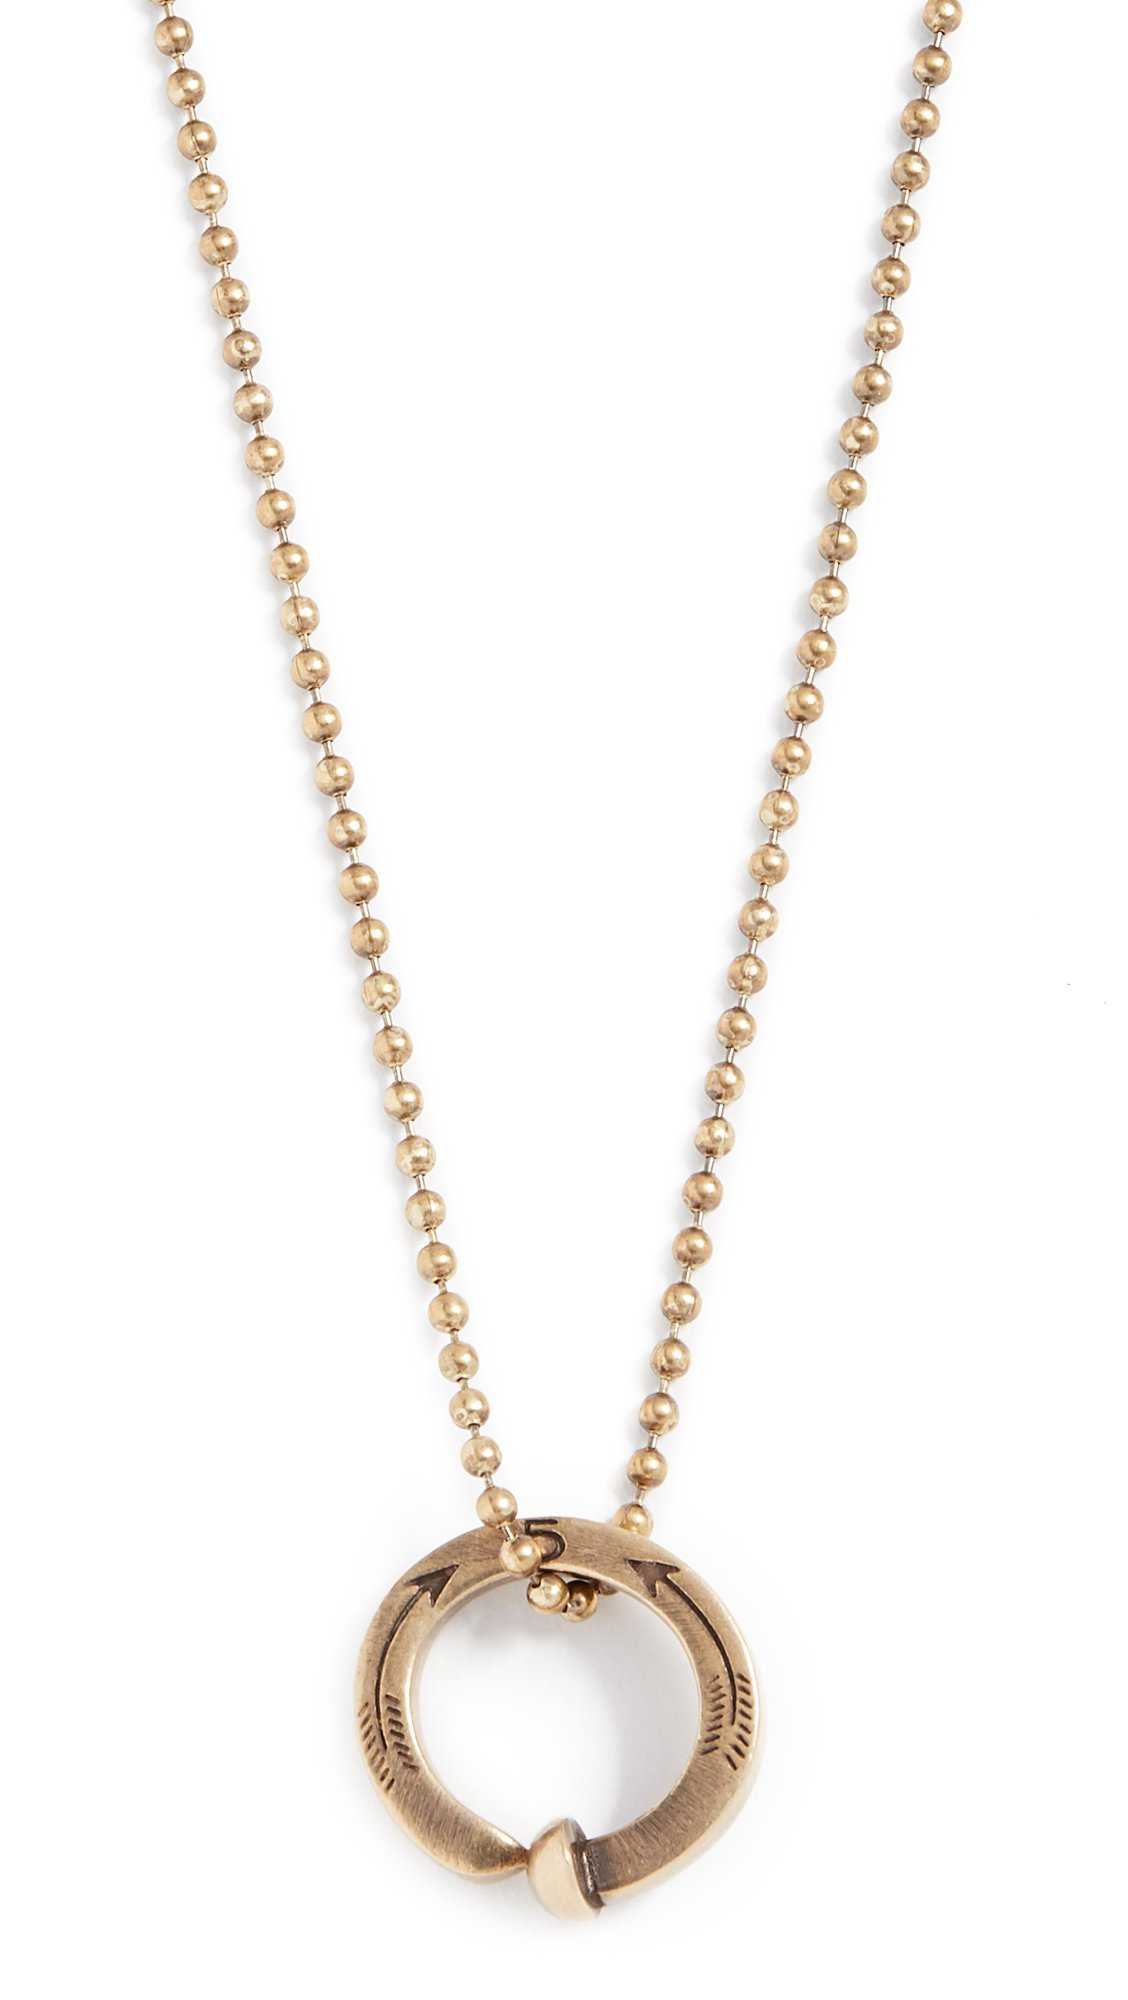 Giles & Brother Men's Railroad Spike Ring Ball Chain Necklace, Antique Brass, One Size